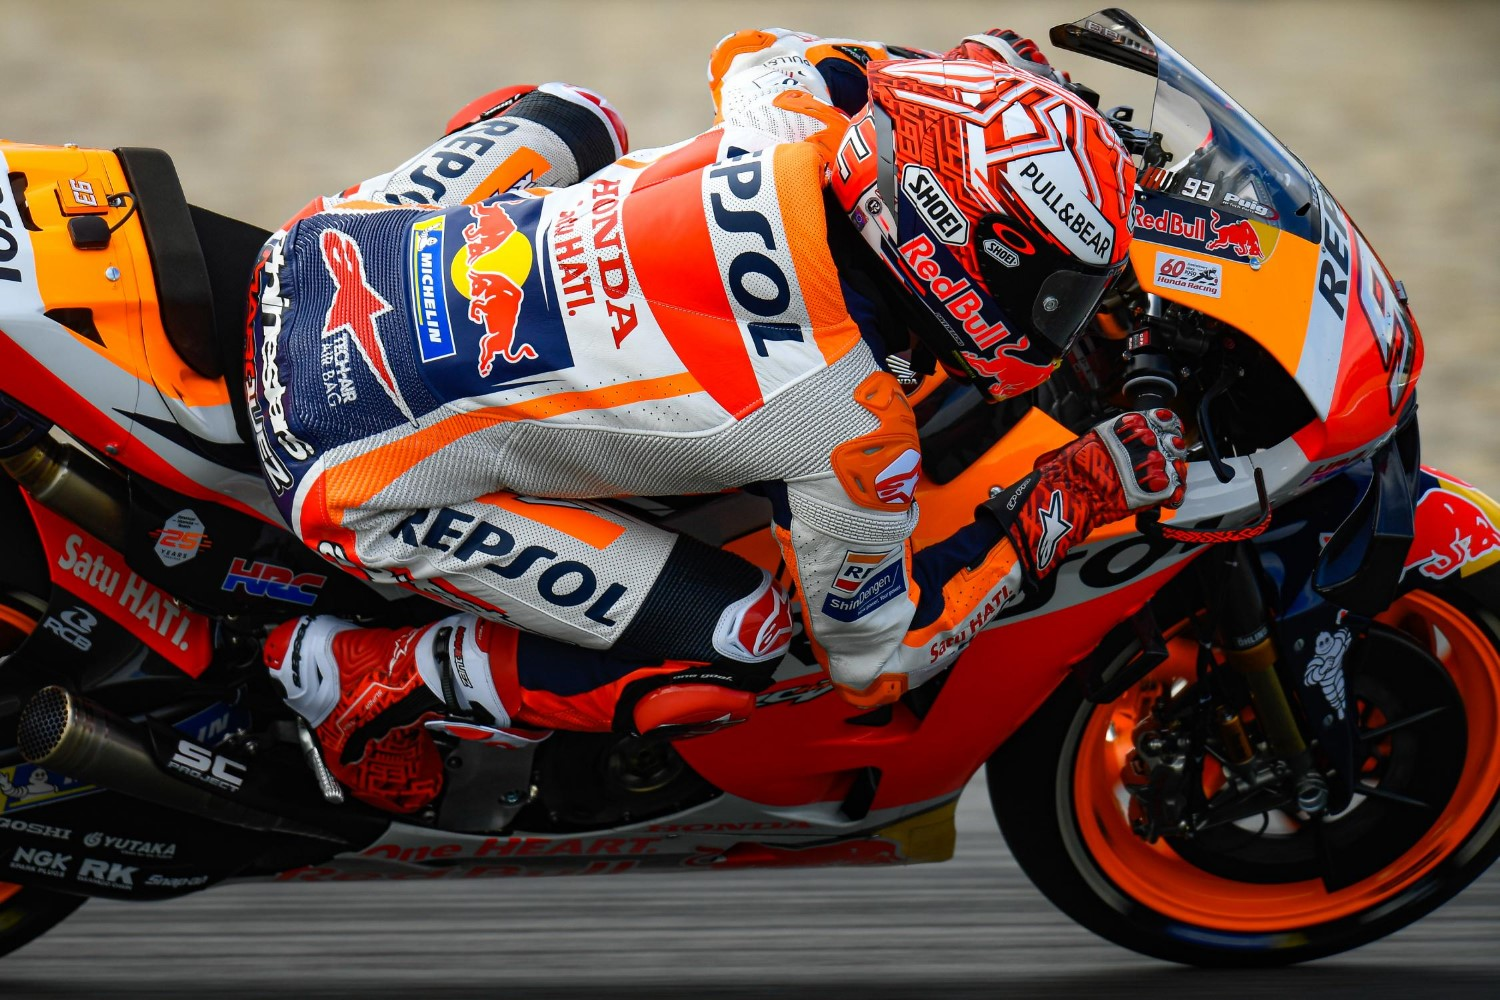 Marquez saved his bike from a spill and lost time, so 4th best on this day